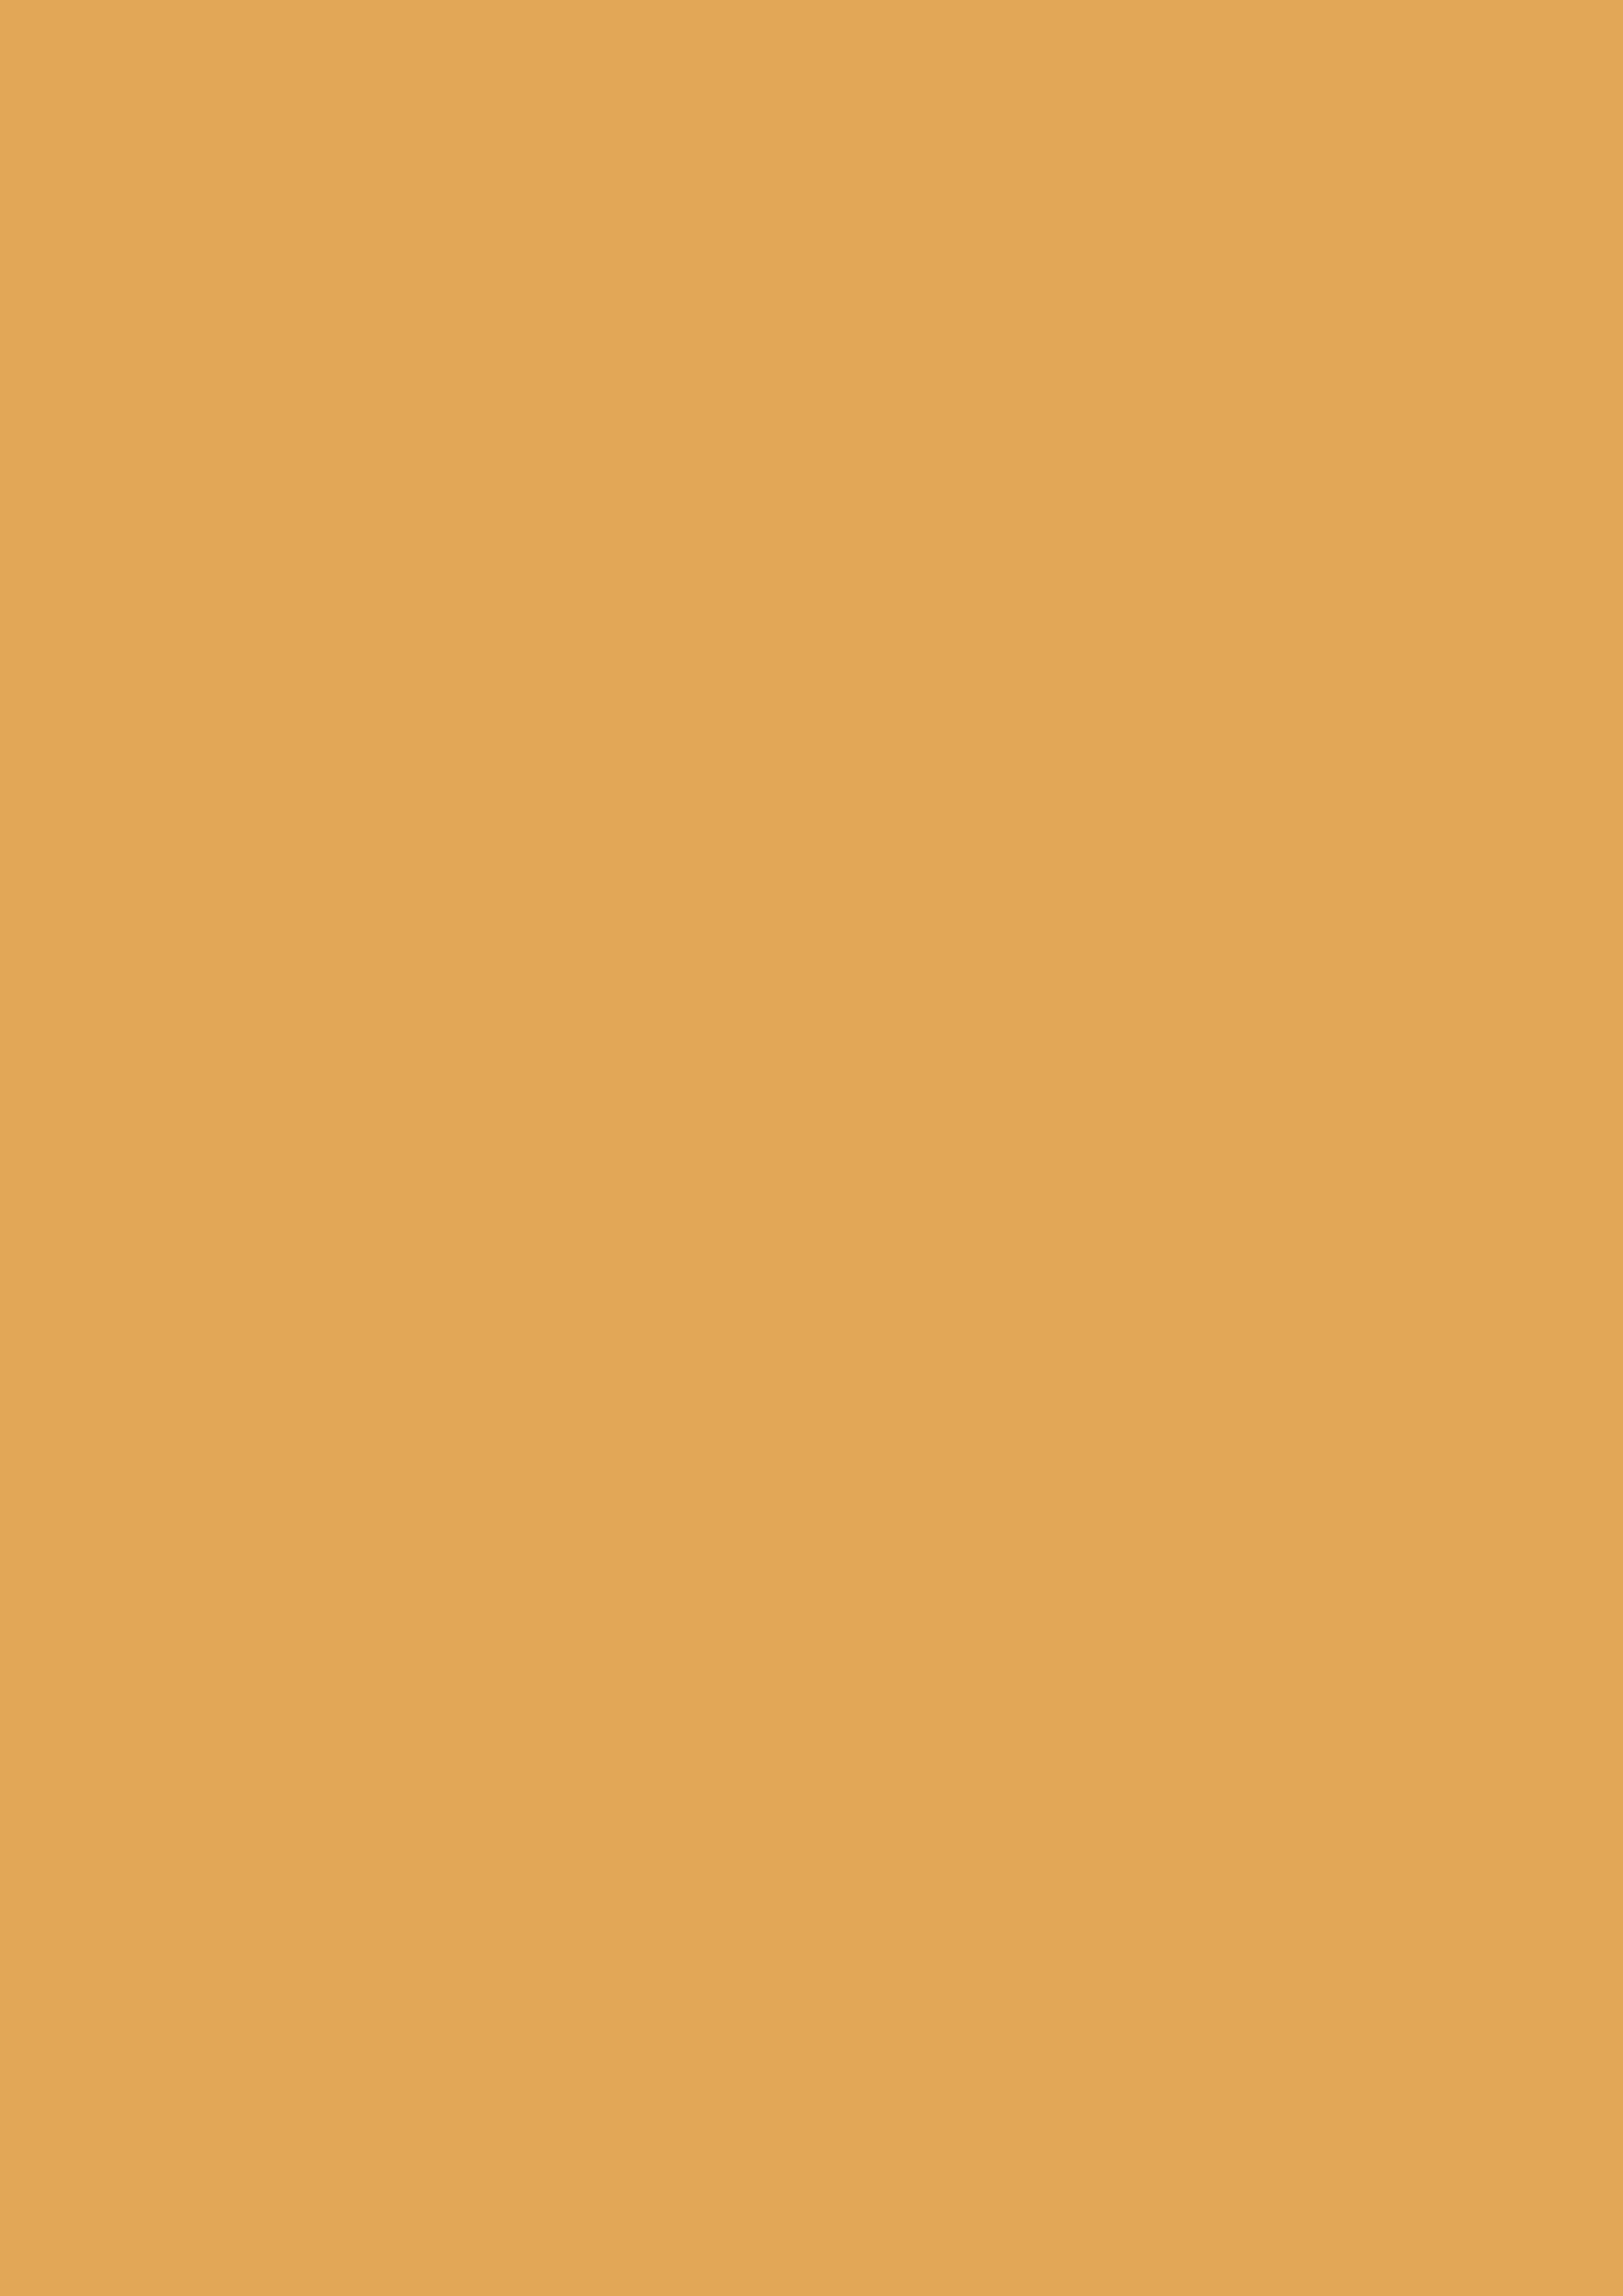 2480x3508 Indian Yellow Solid Color Background